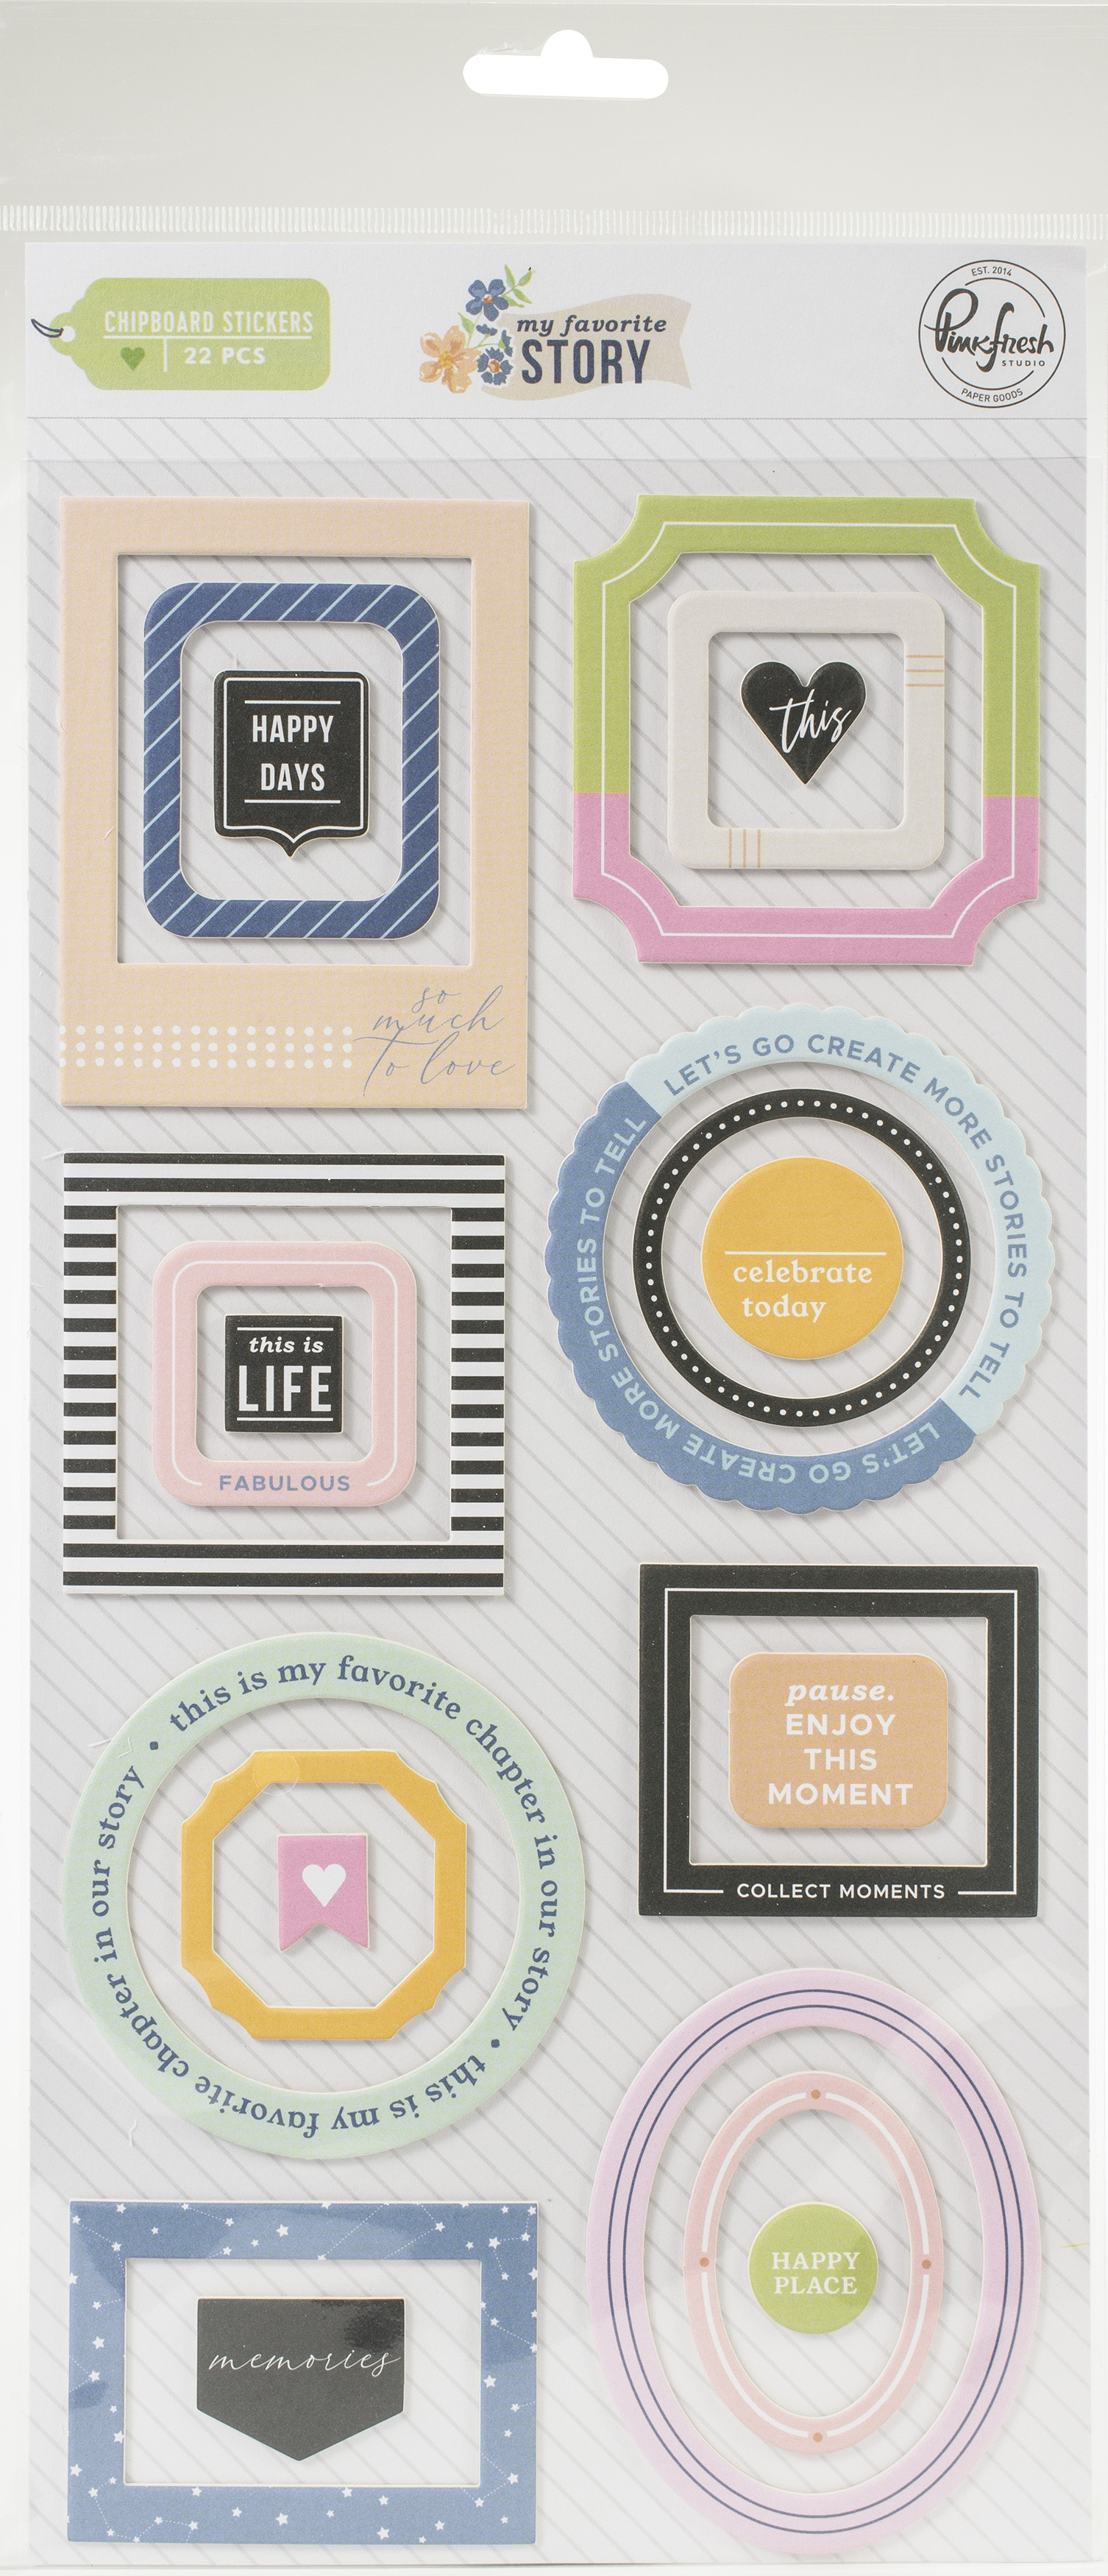 My Favorite Story Chipboard Frames & Accent Stickers-